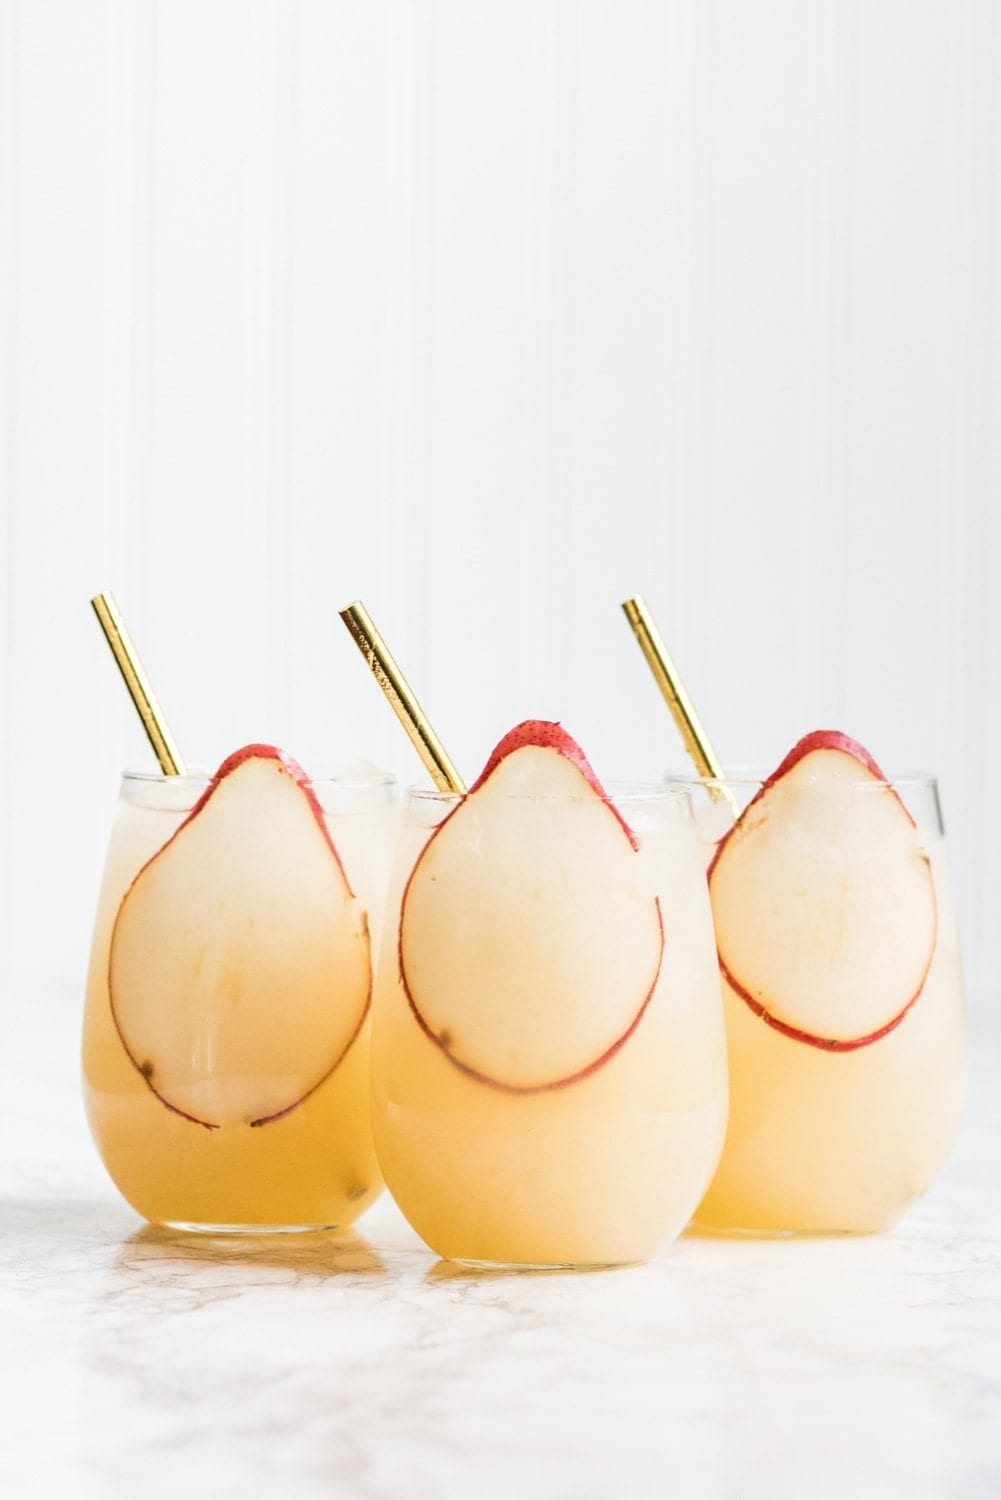 New Year's Eve Cocktails - Fizzy Spiked Pear Punch